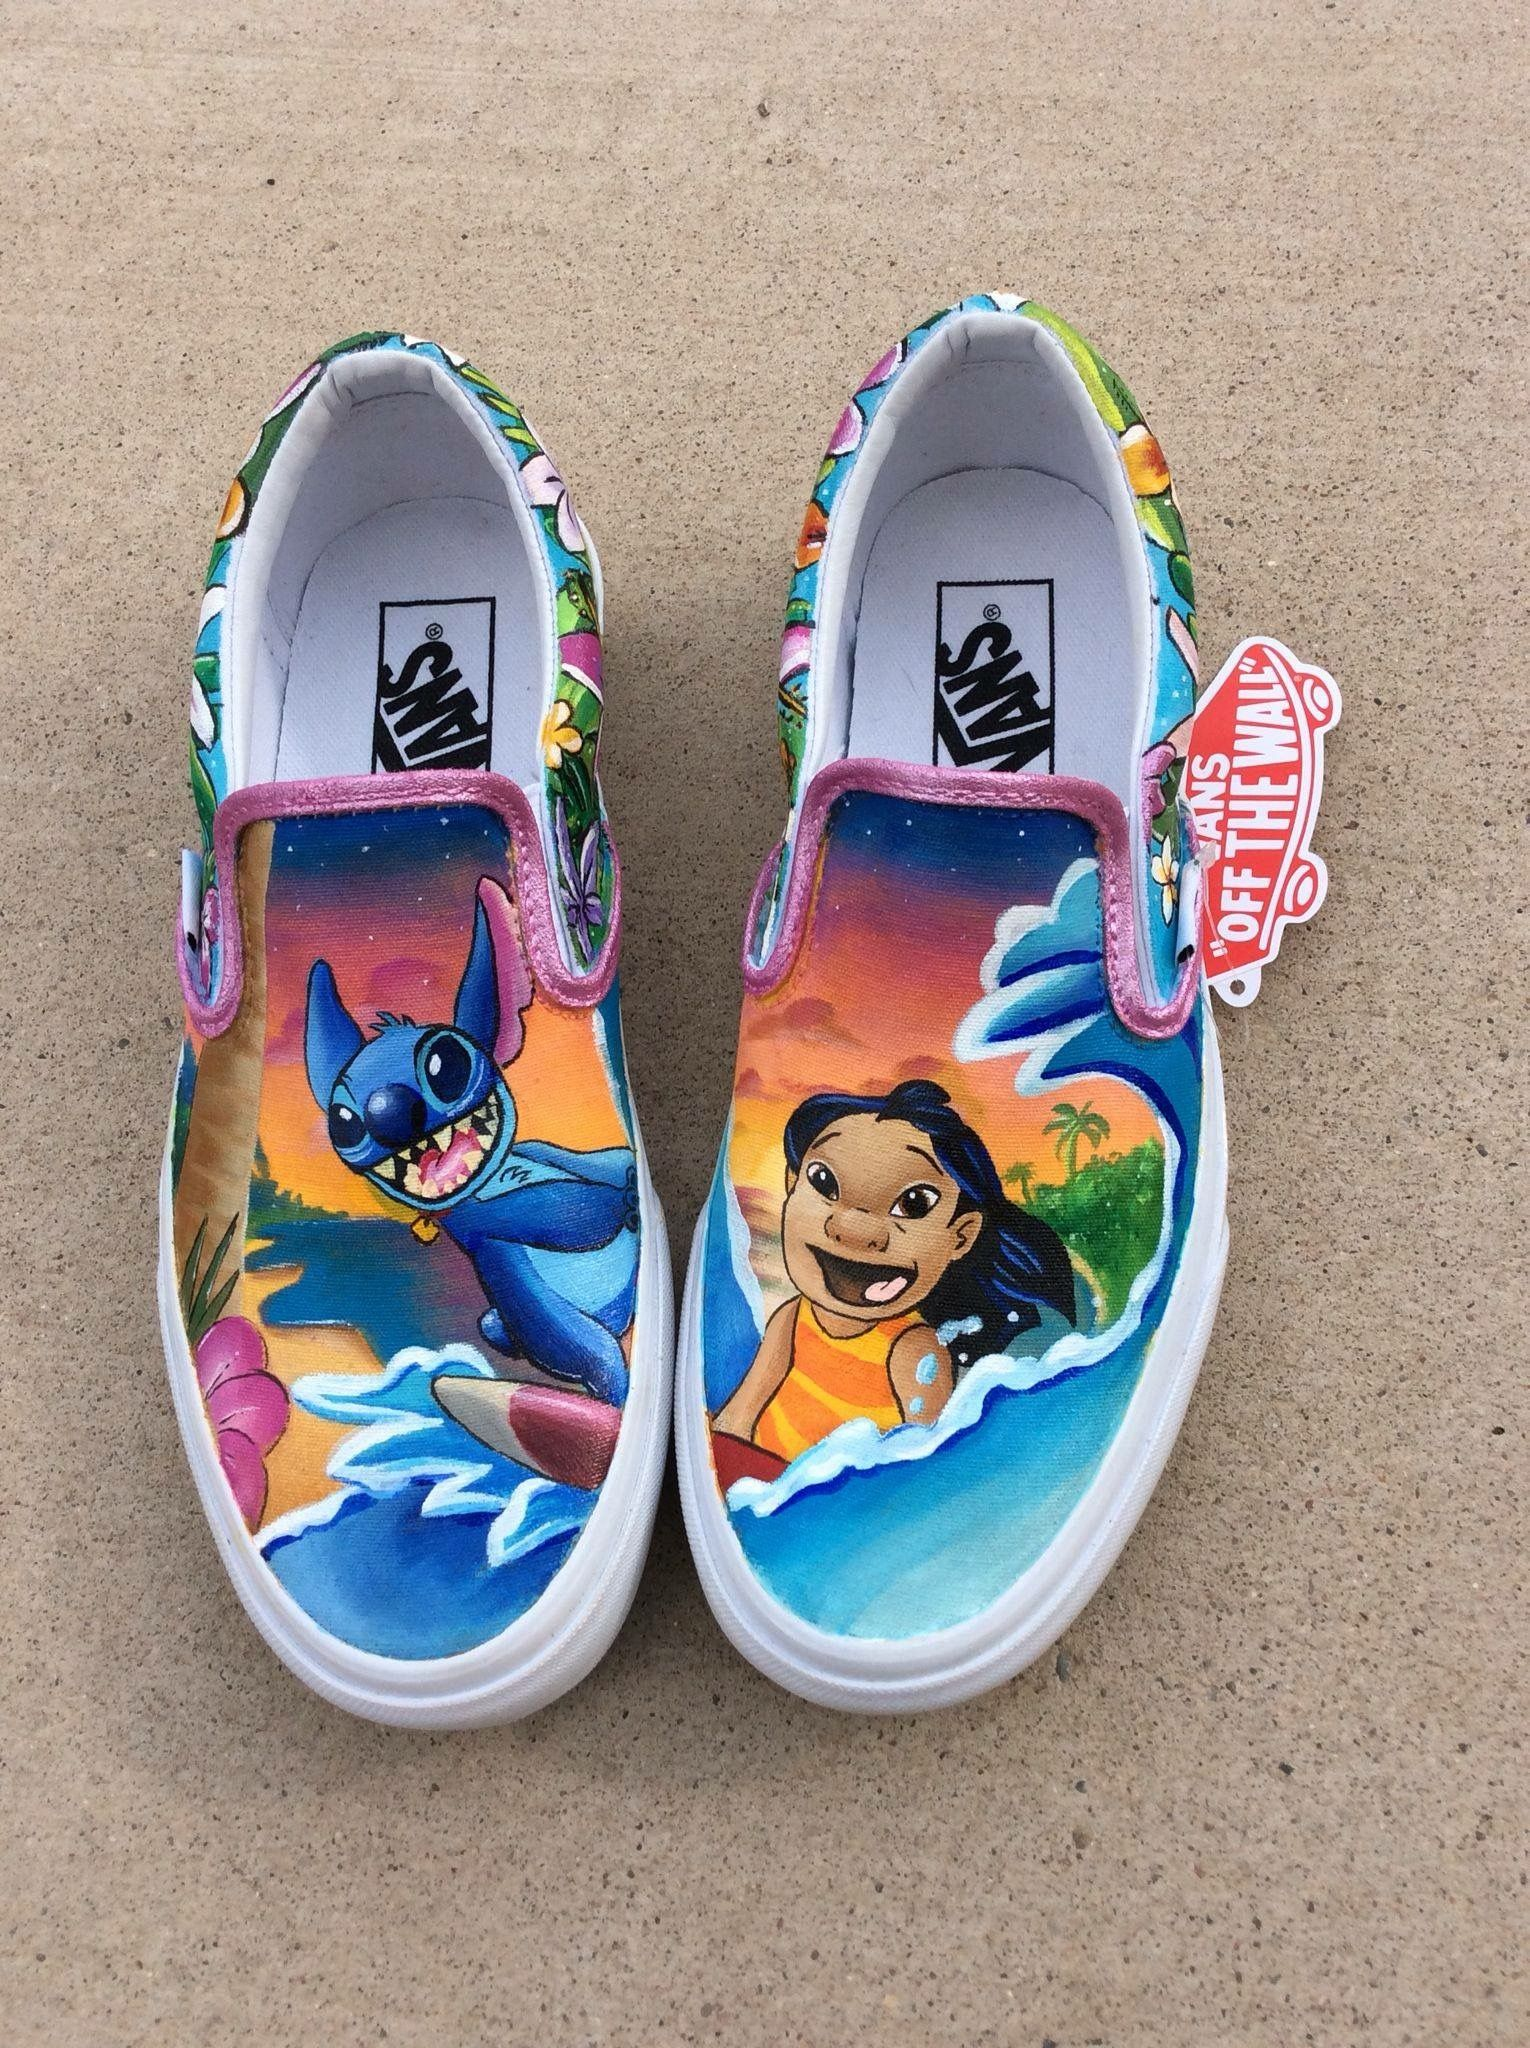 lilo   stitch 💜💚💛🧡💙 Disney Painted Shoes 2b5876519e